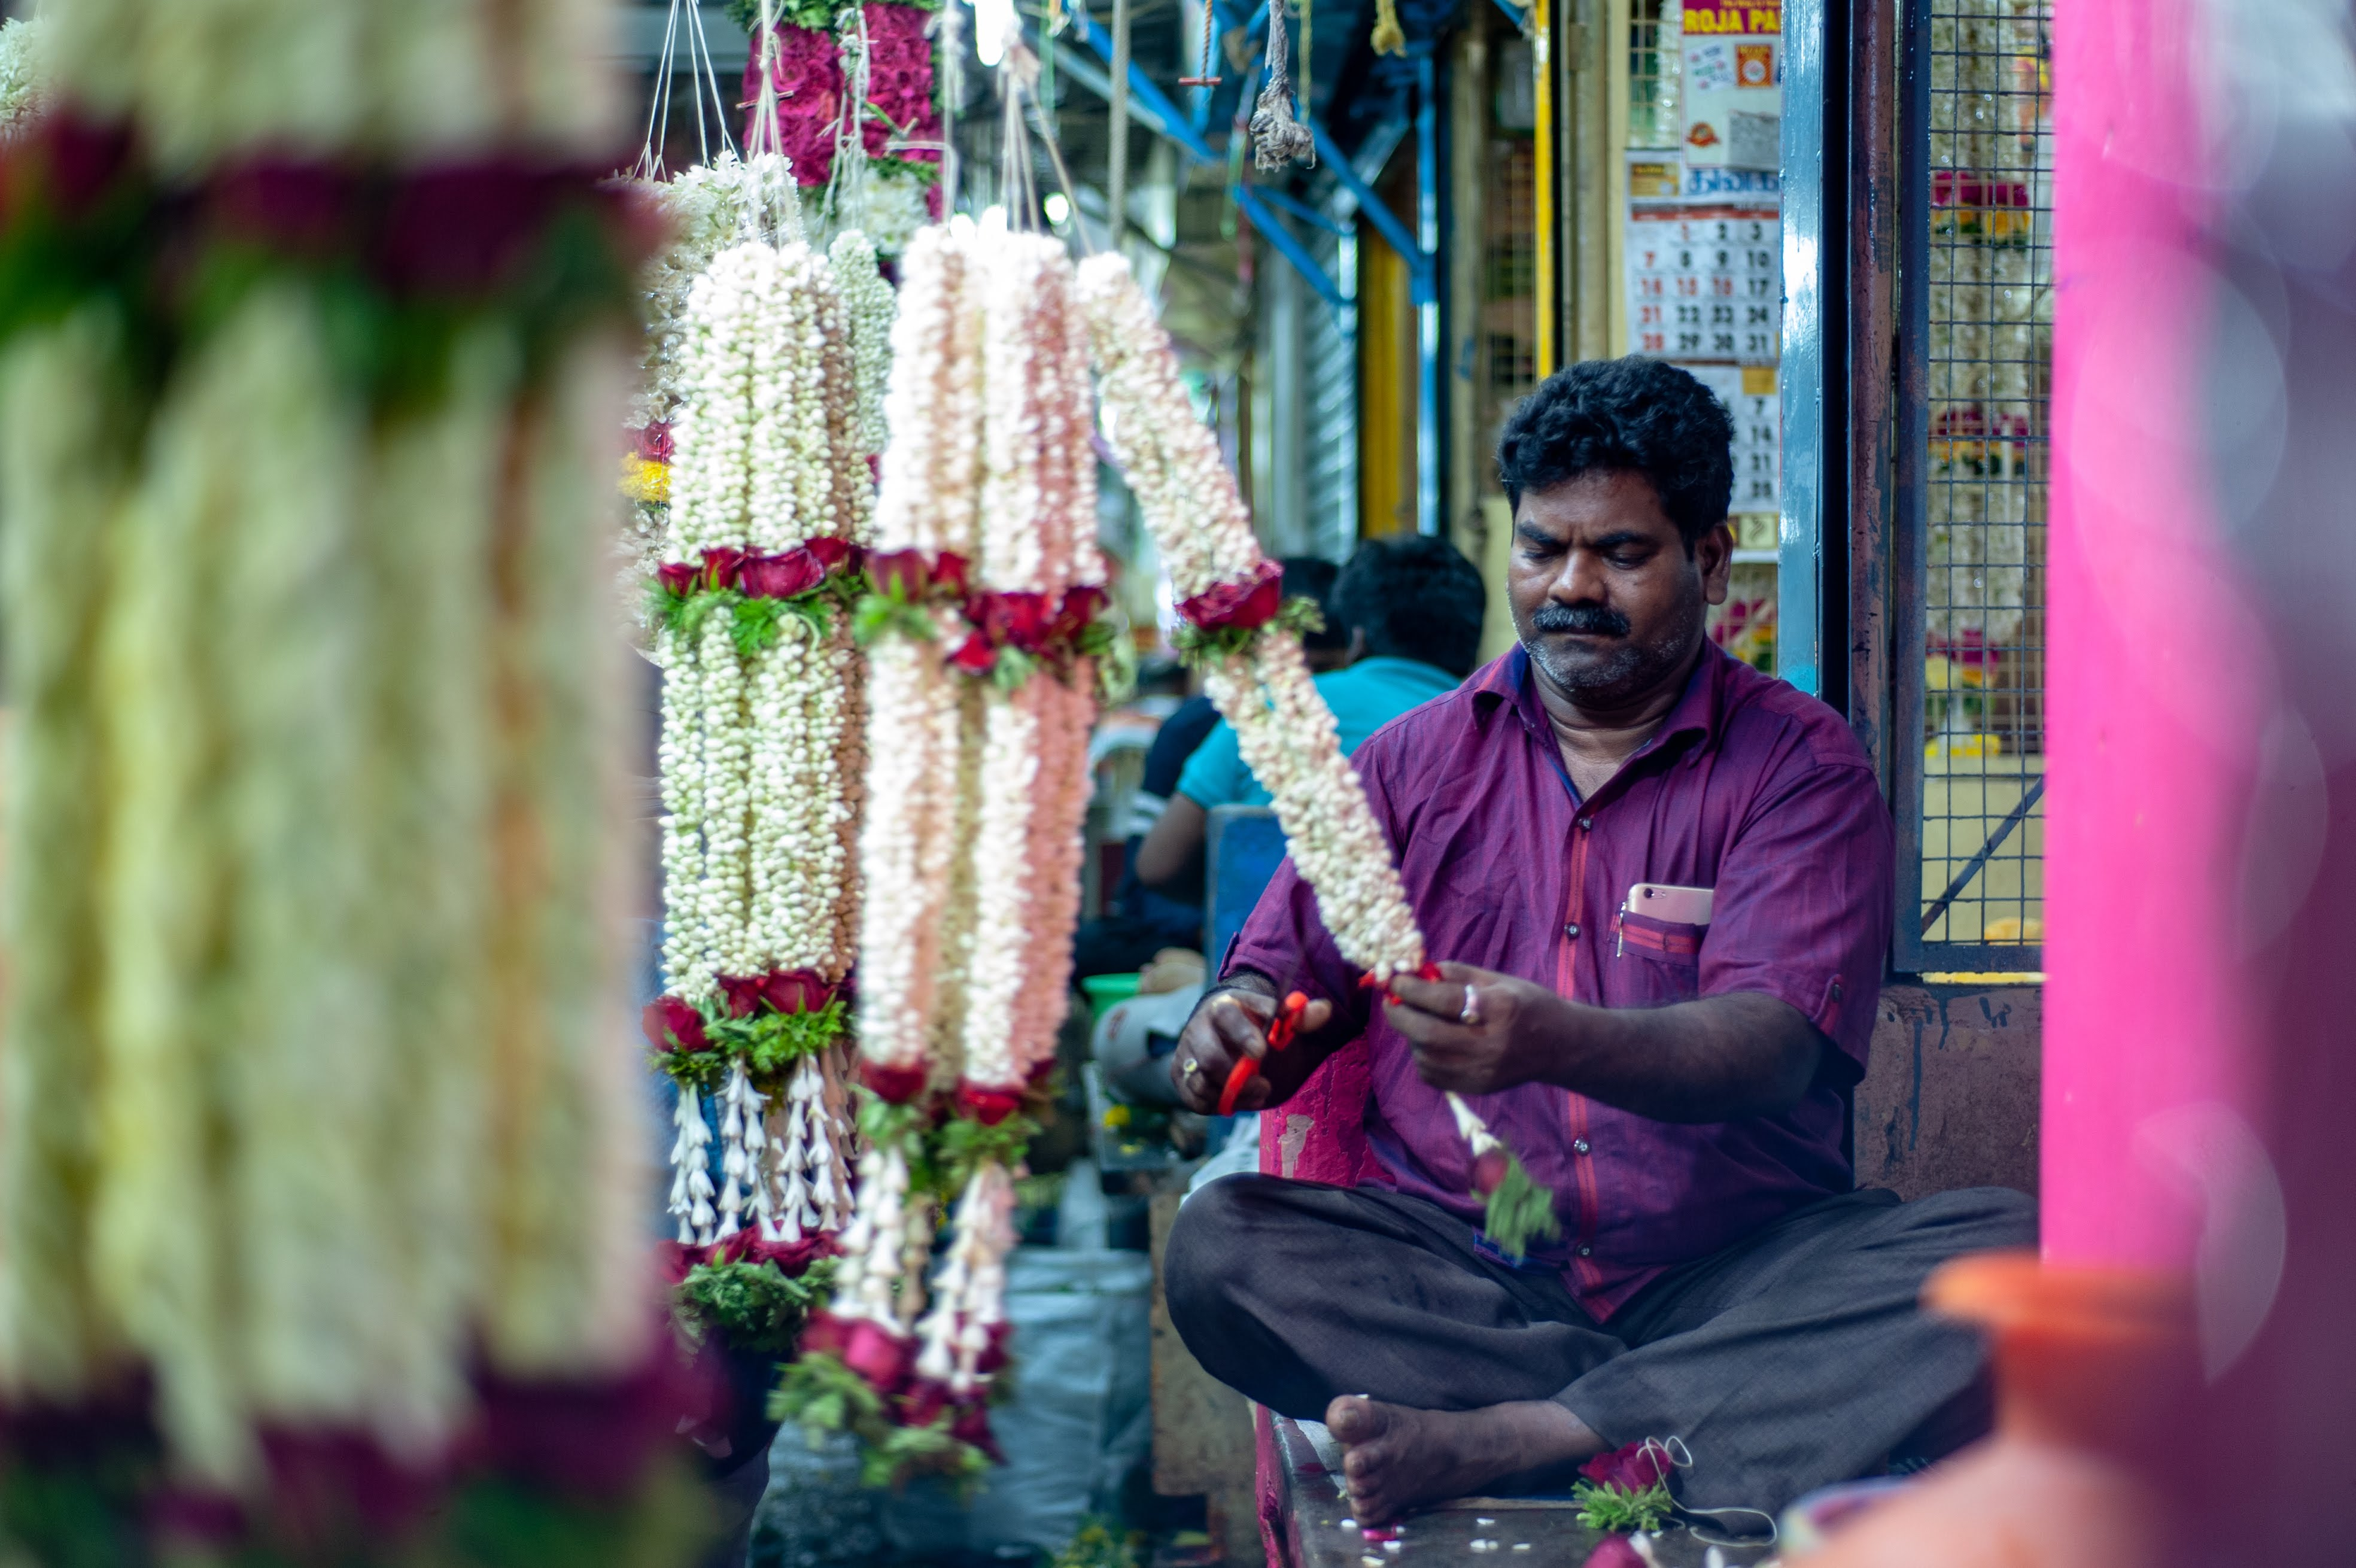 A flower vendor, sitting cross legged, works away on his orders for the day.